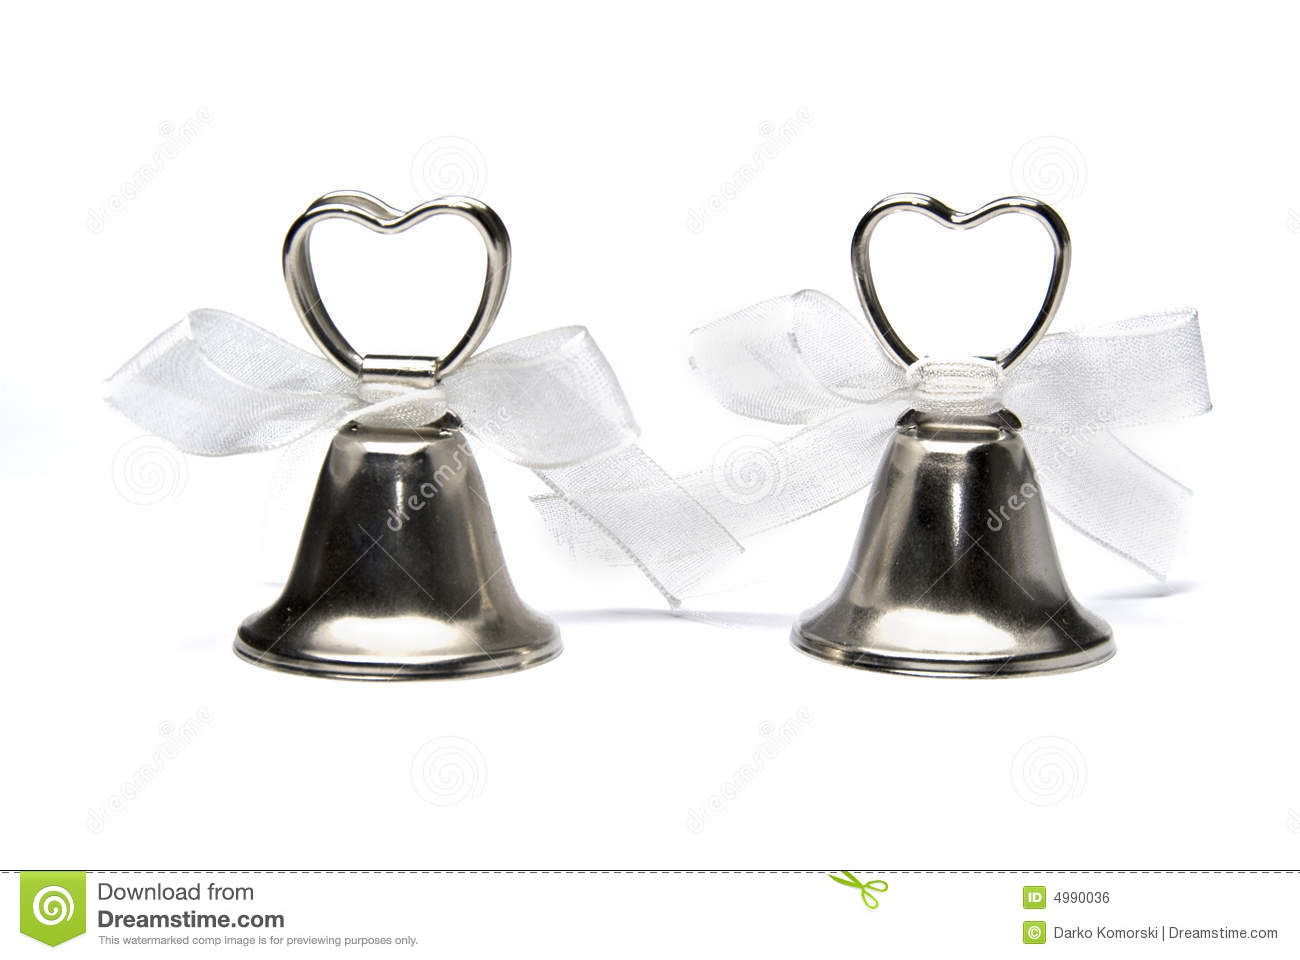 Two Wedding Bells Isolated On White Background Royalty. Wedding Trends Magazine Quinte. Wedding Cake Toppers Guitar. Wedding Shuttle Service York Pa. Wedding Officiant In Pa. Winter Wedding Menu. Wedding Catering Sioux Falls Sd. Disposable Wedding Camera Table Cards. Affordable Wedding Photographers Hawaii